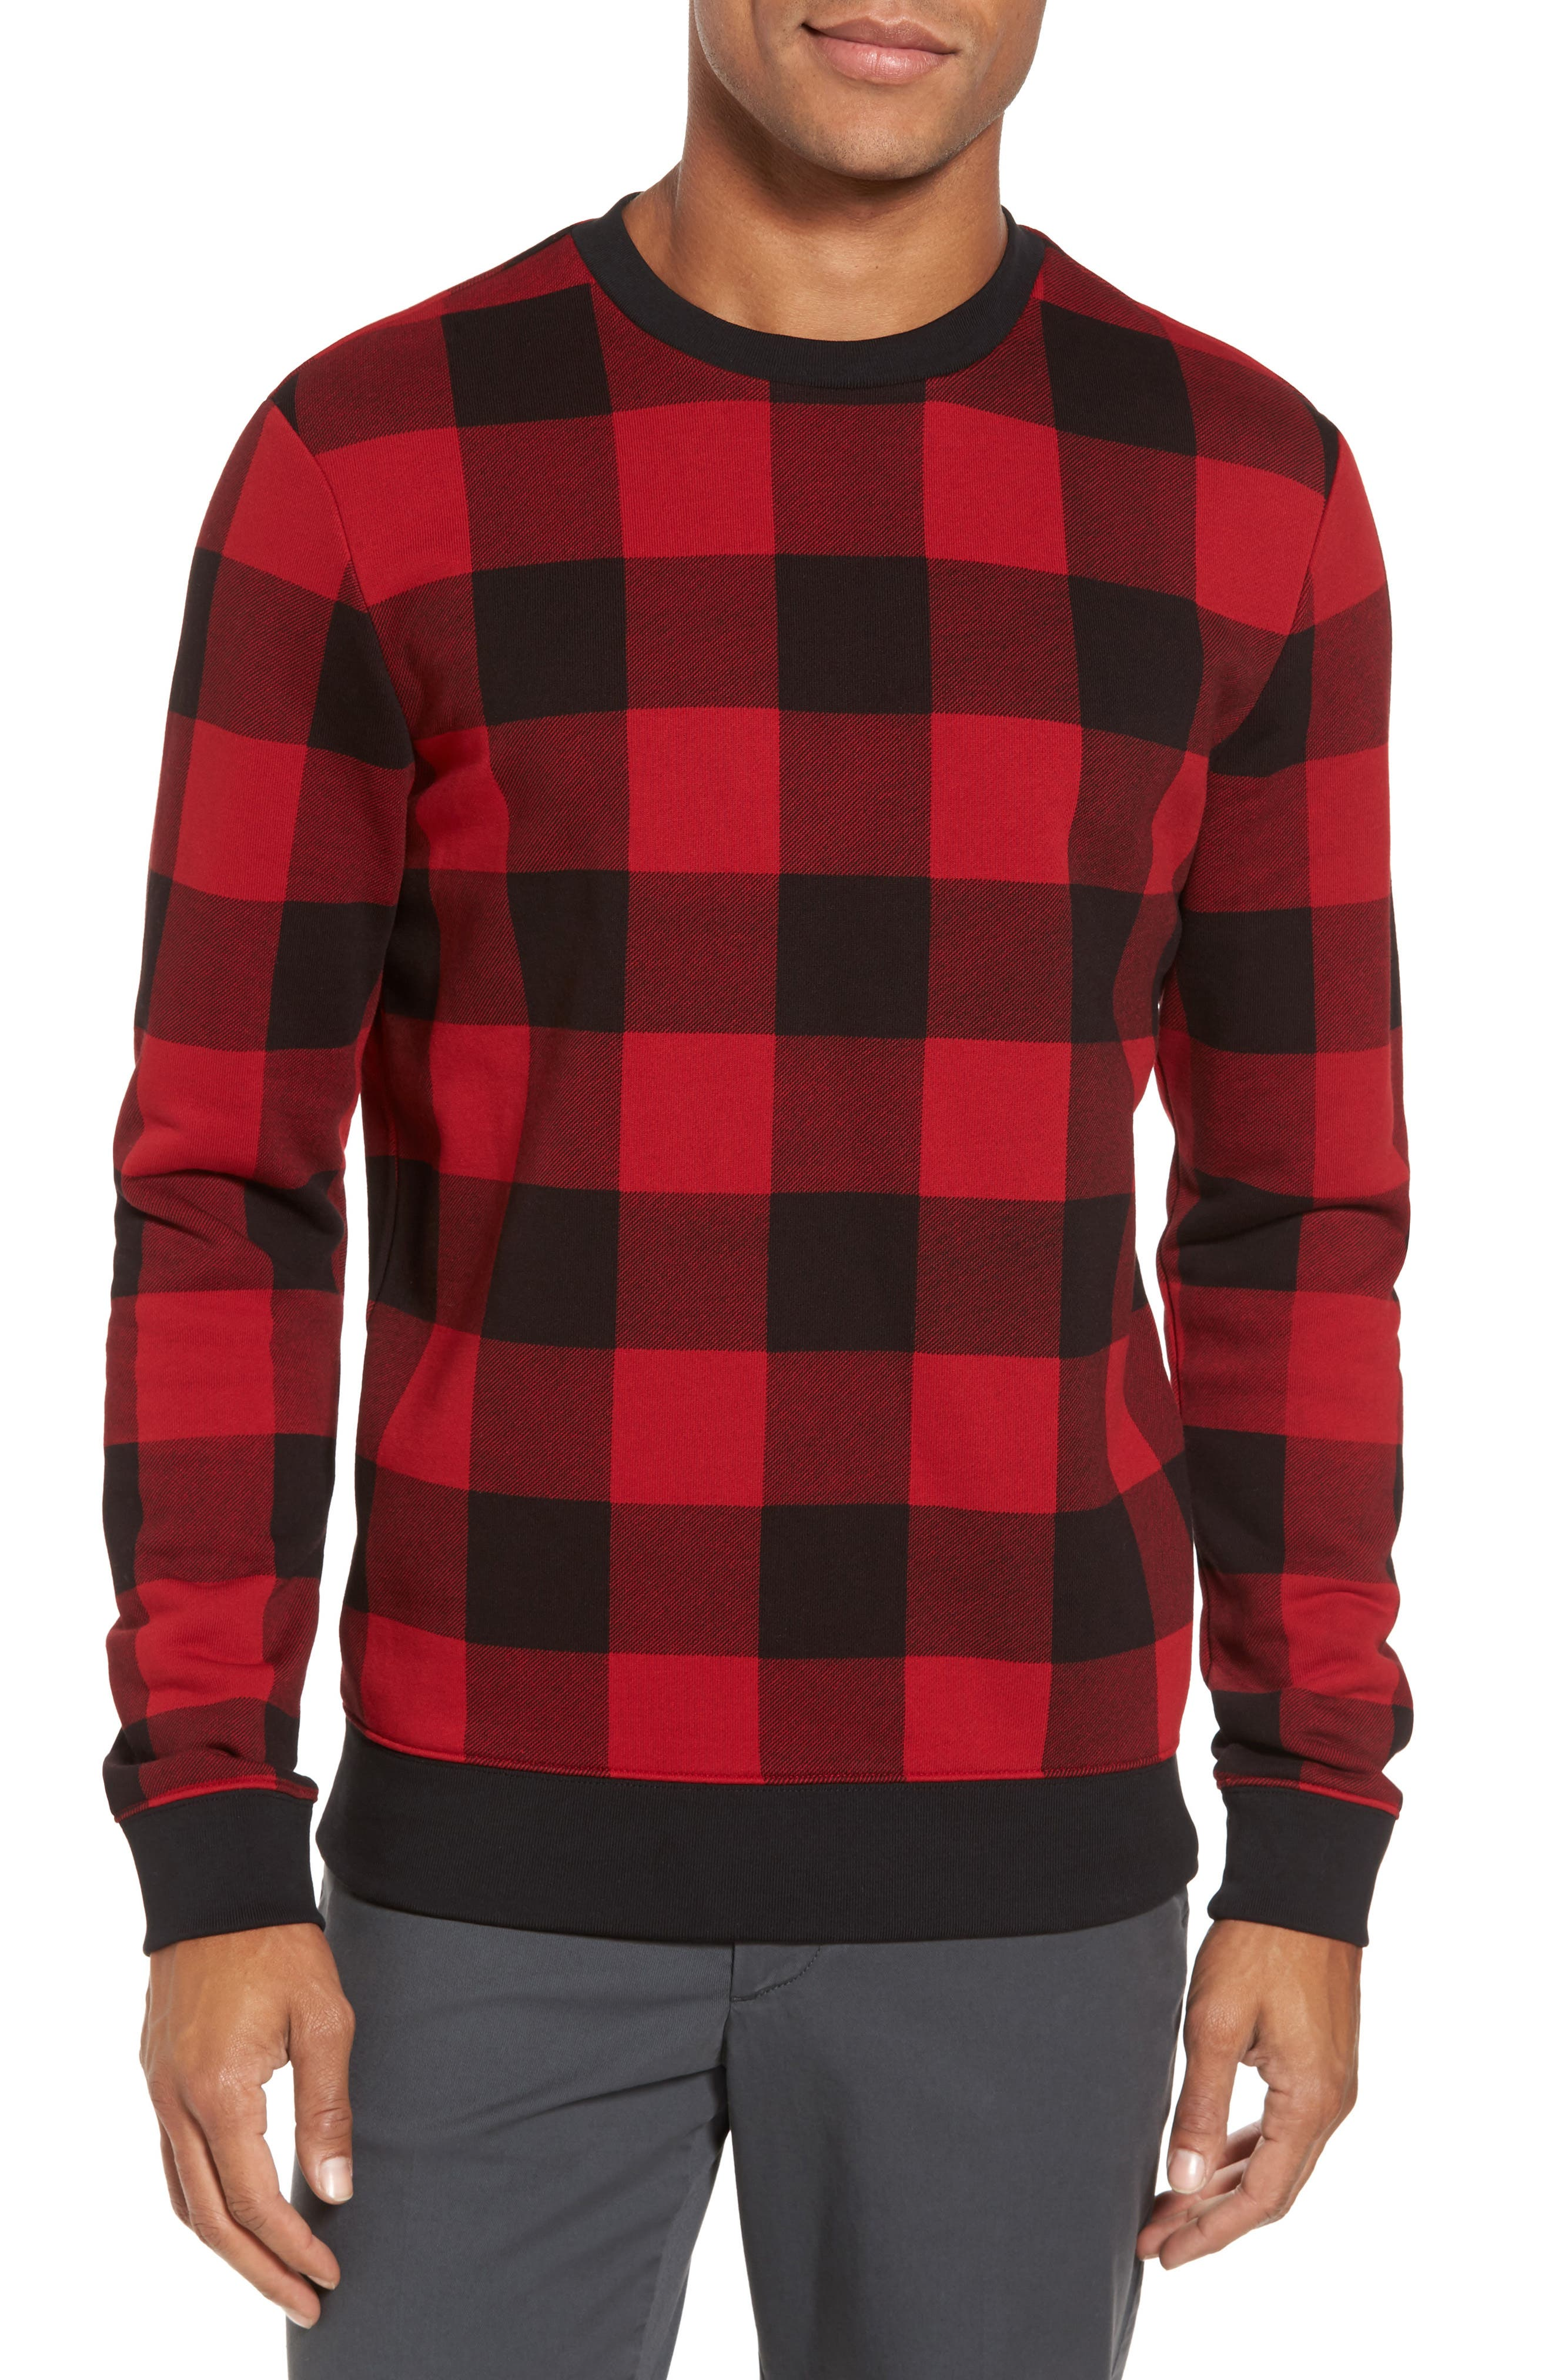 Skubic Check Slim Fit Sweater,                             Main thumbnail 1, color,                             629